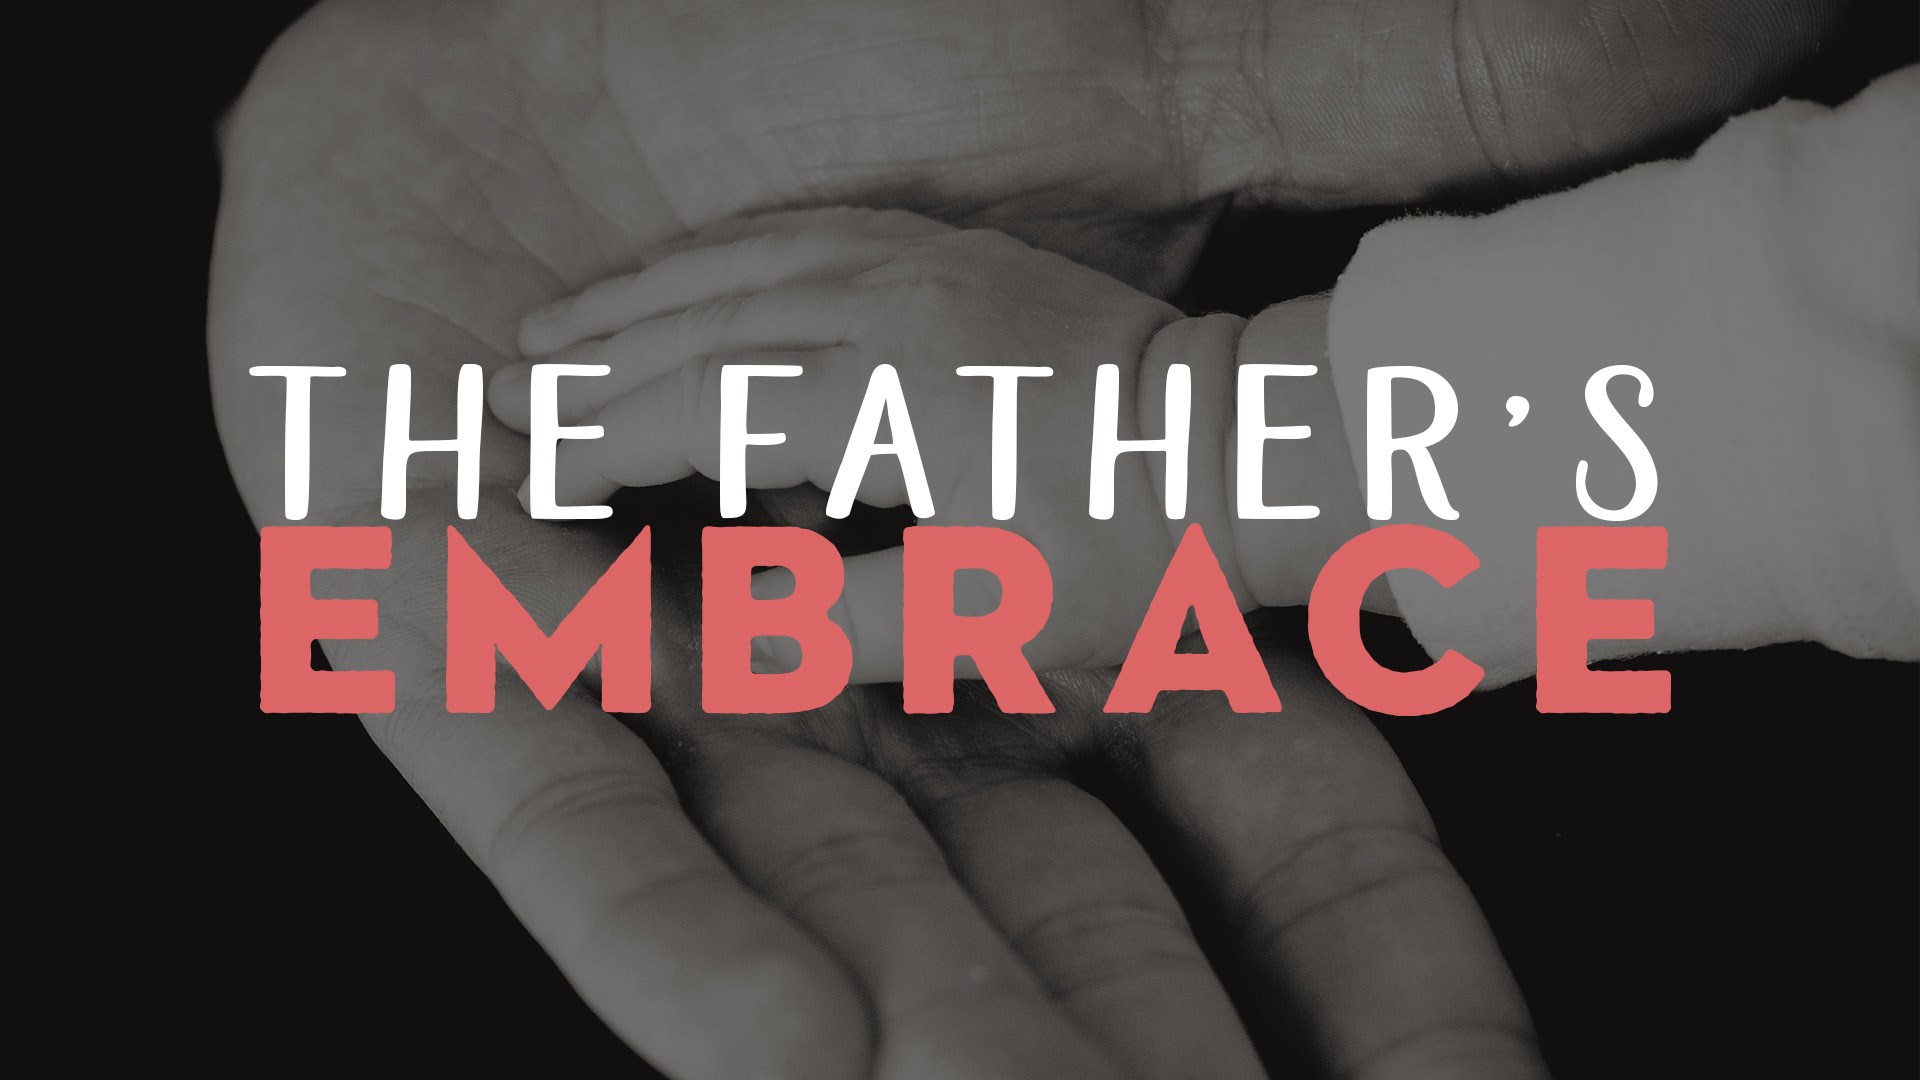 Father's Embrace Series Banner - Picture of Father's Hands Holding Child's Hands